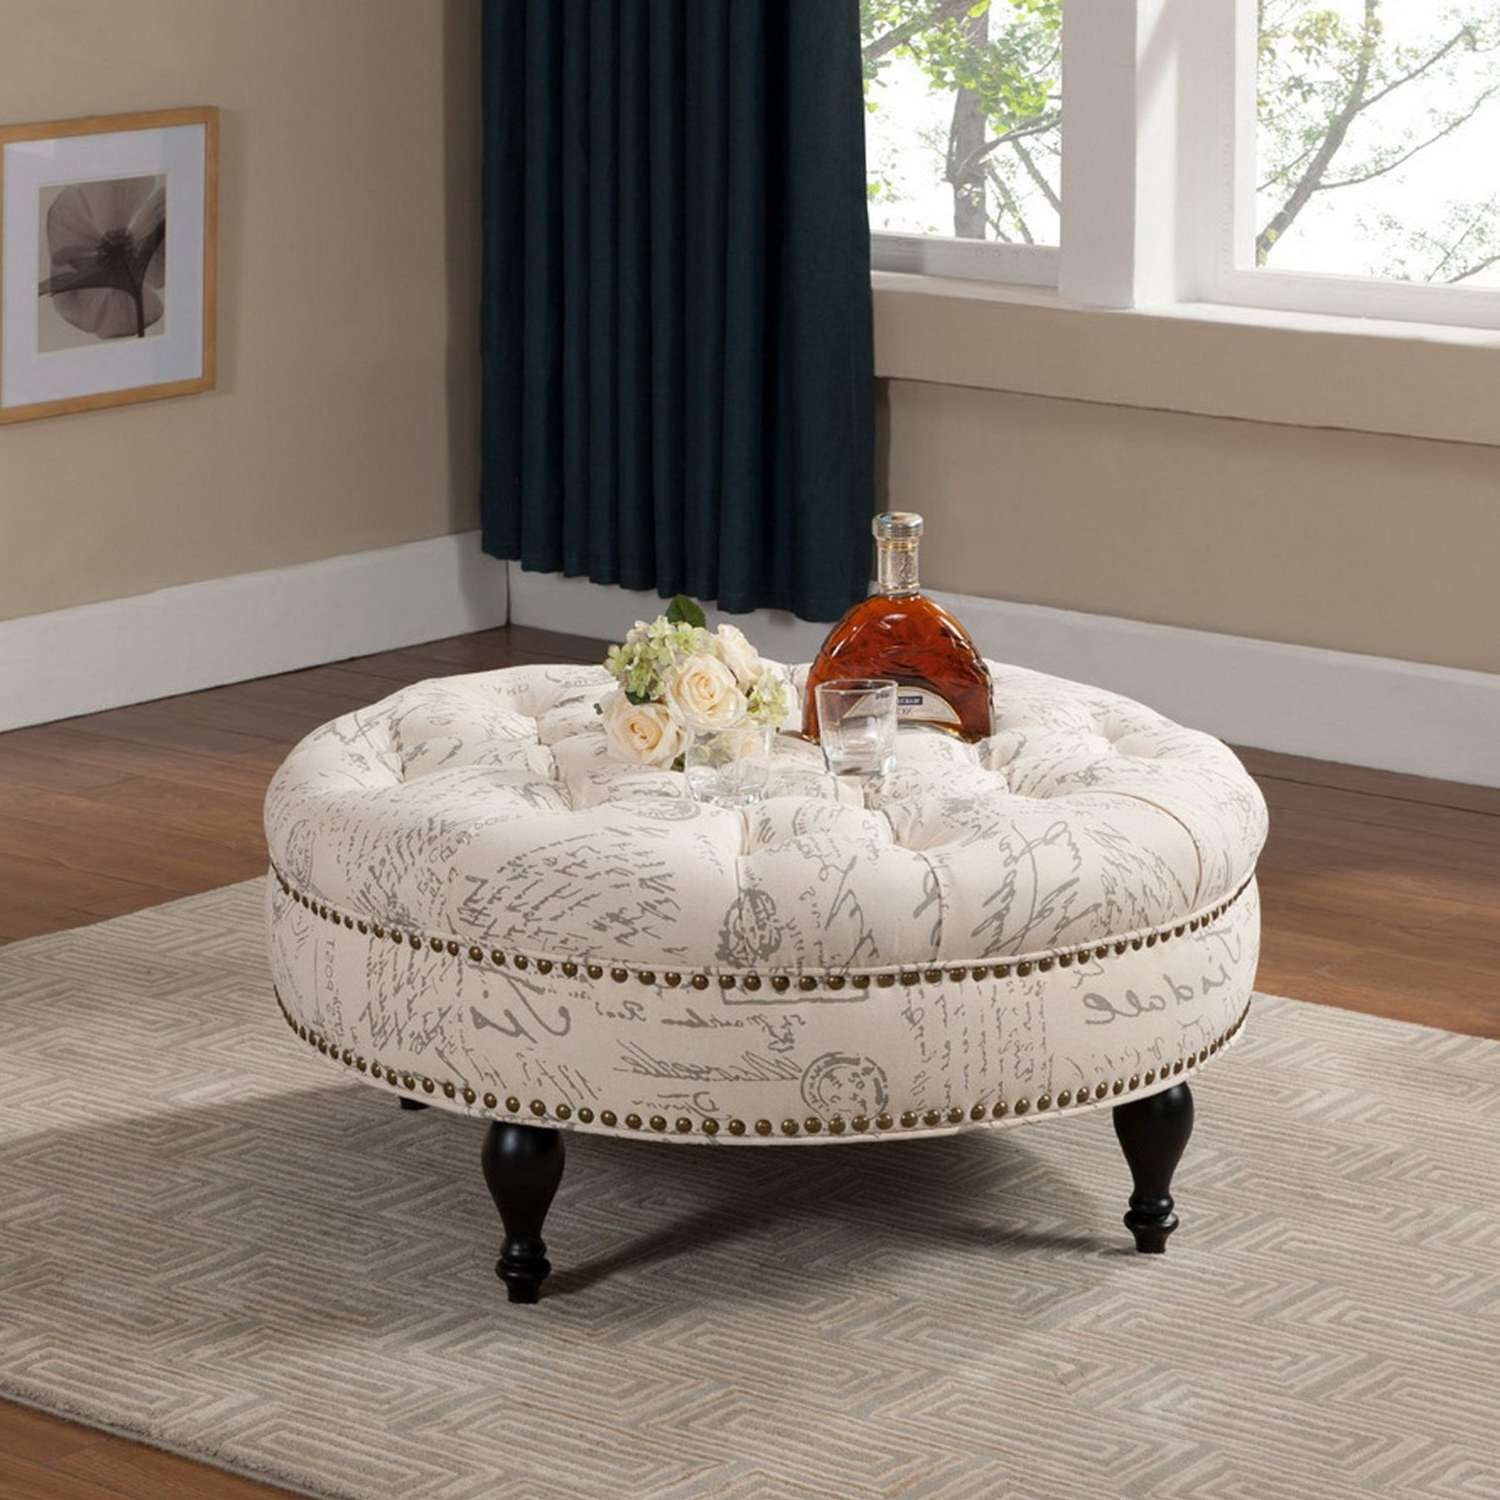 2018 Round Upholstered Coffee Tables Pertaining To Coffee Tables : Mesmerizing Round Upholstered Coffee Table Designs (View 3 of 20)